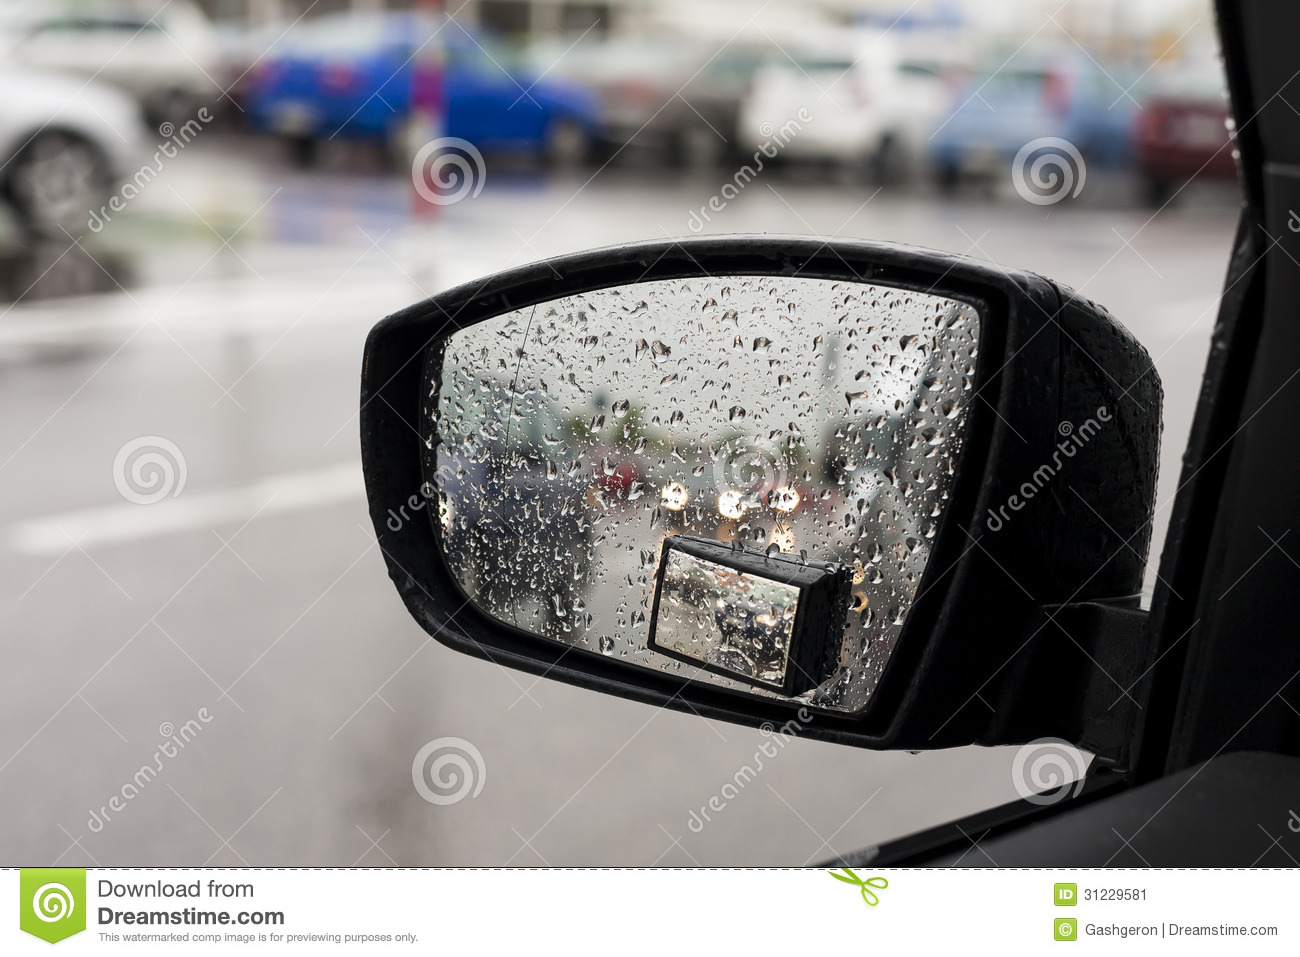 Wet By The Rain The Car Mirror, Blurry Cars In Mirror